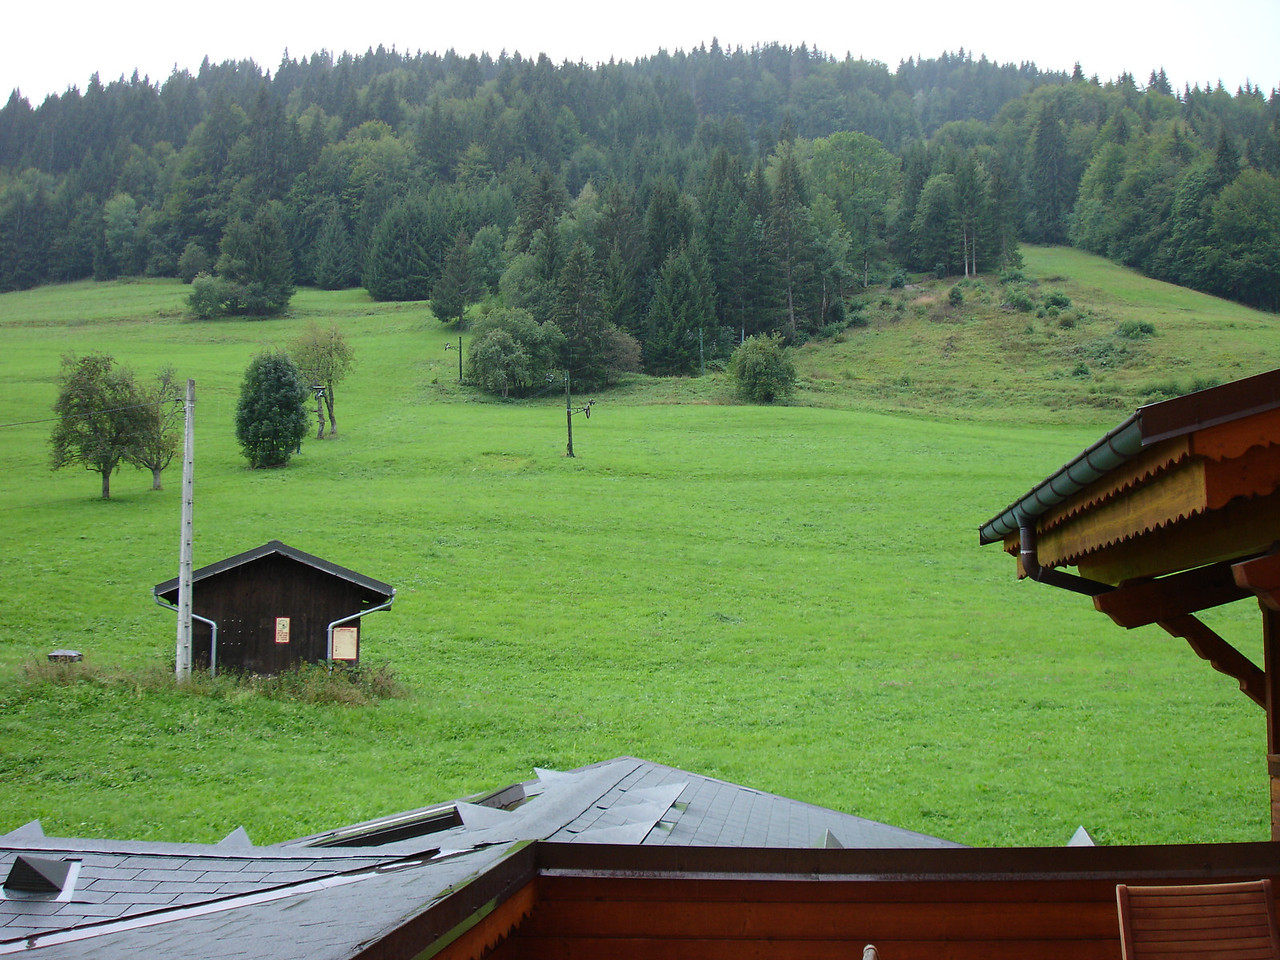 View from room in Morzine, France